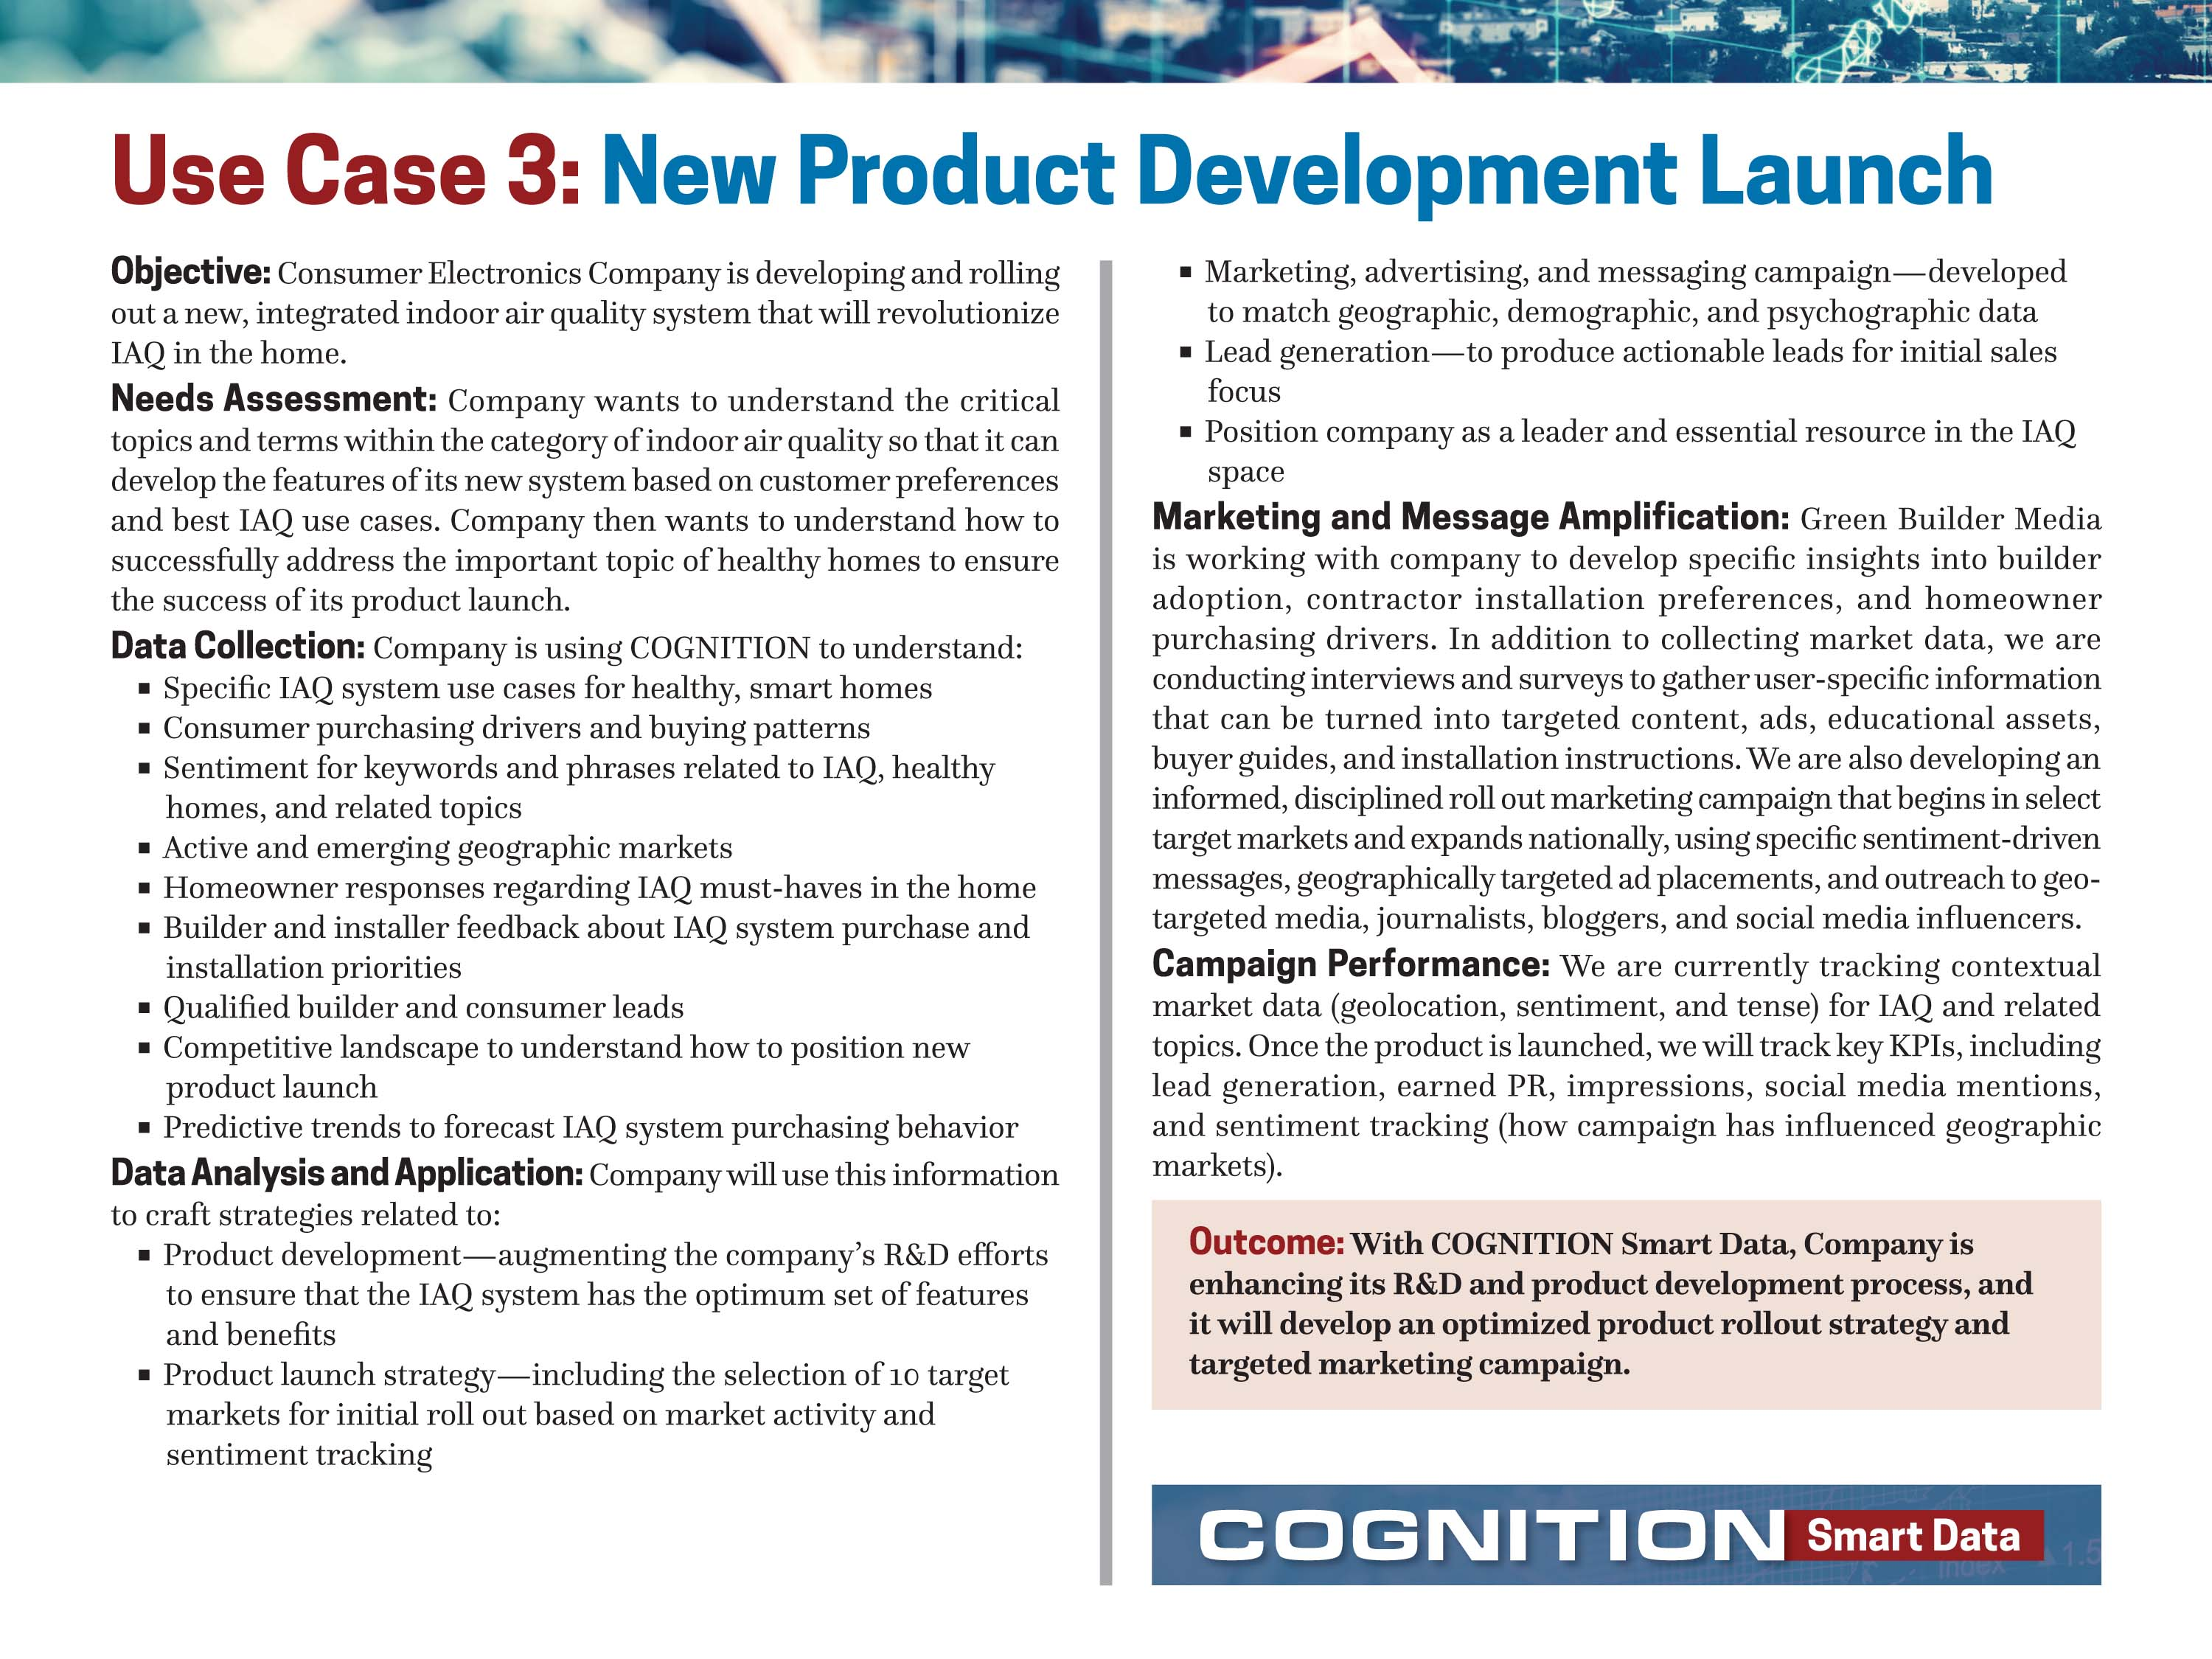 COGNITION Use Cases-3.jpg